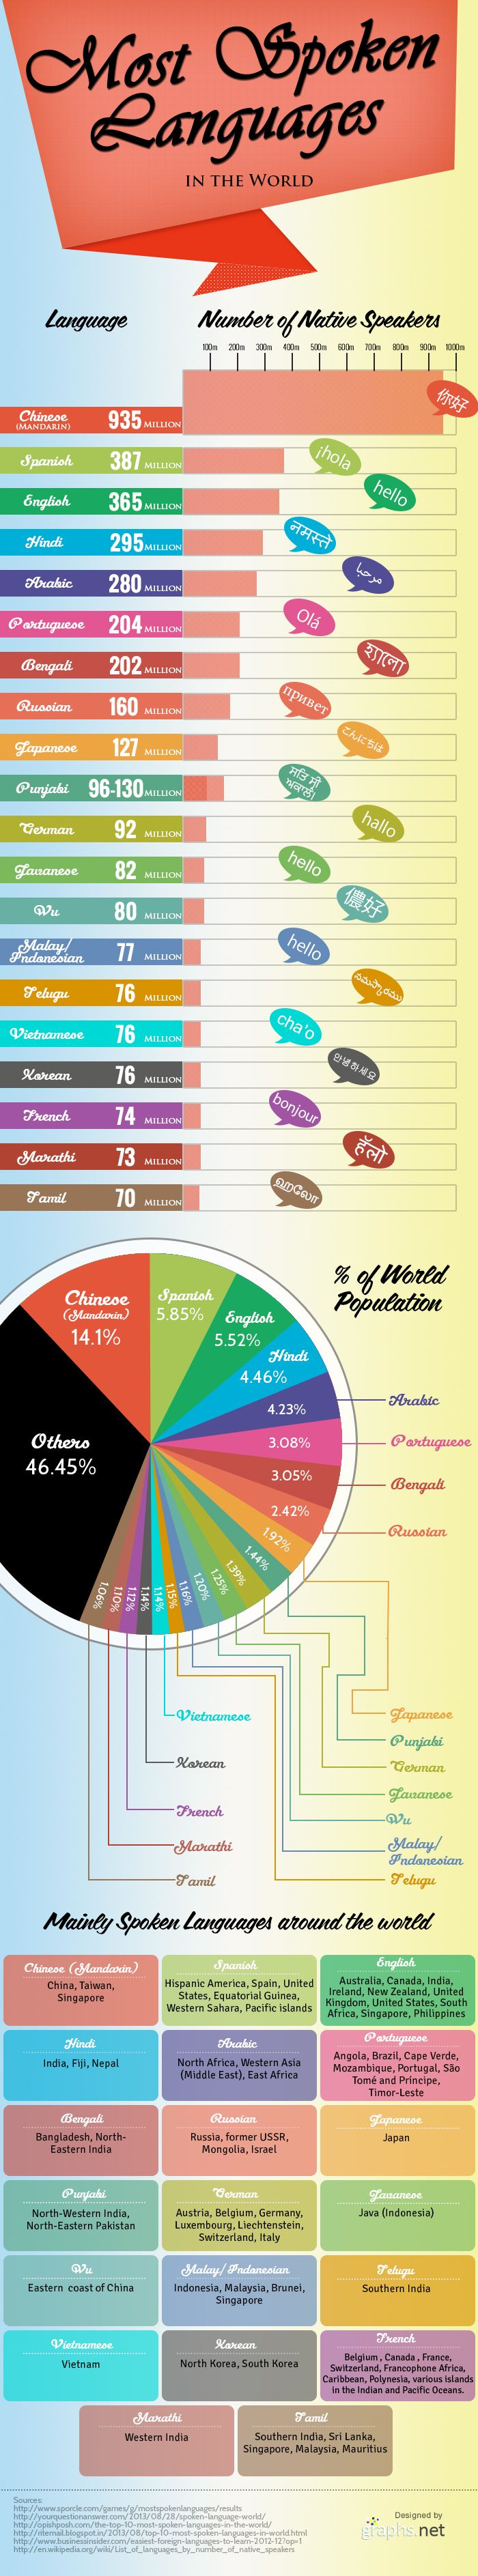 Most Spoken Languages In The World Httpgraphsnetmost - Most spoken language in the world statistics